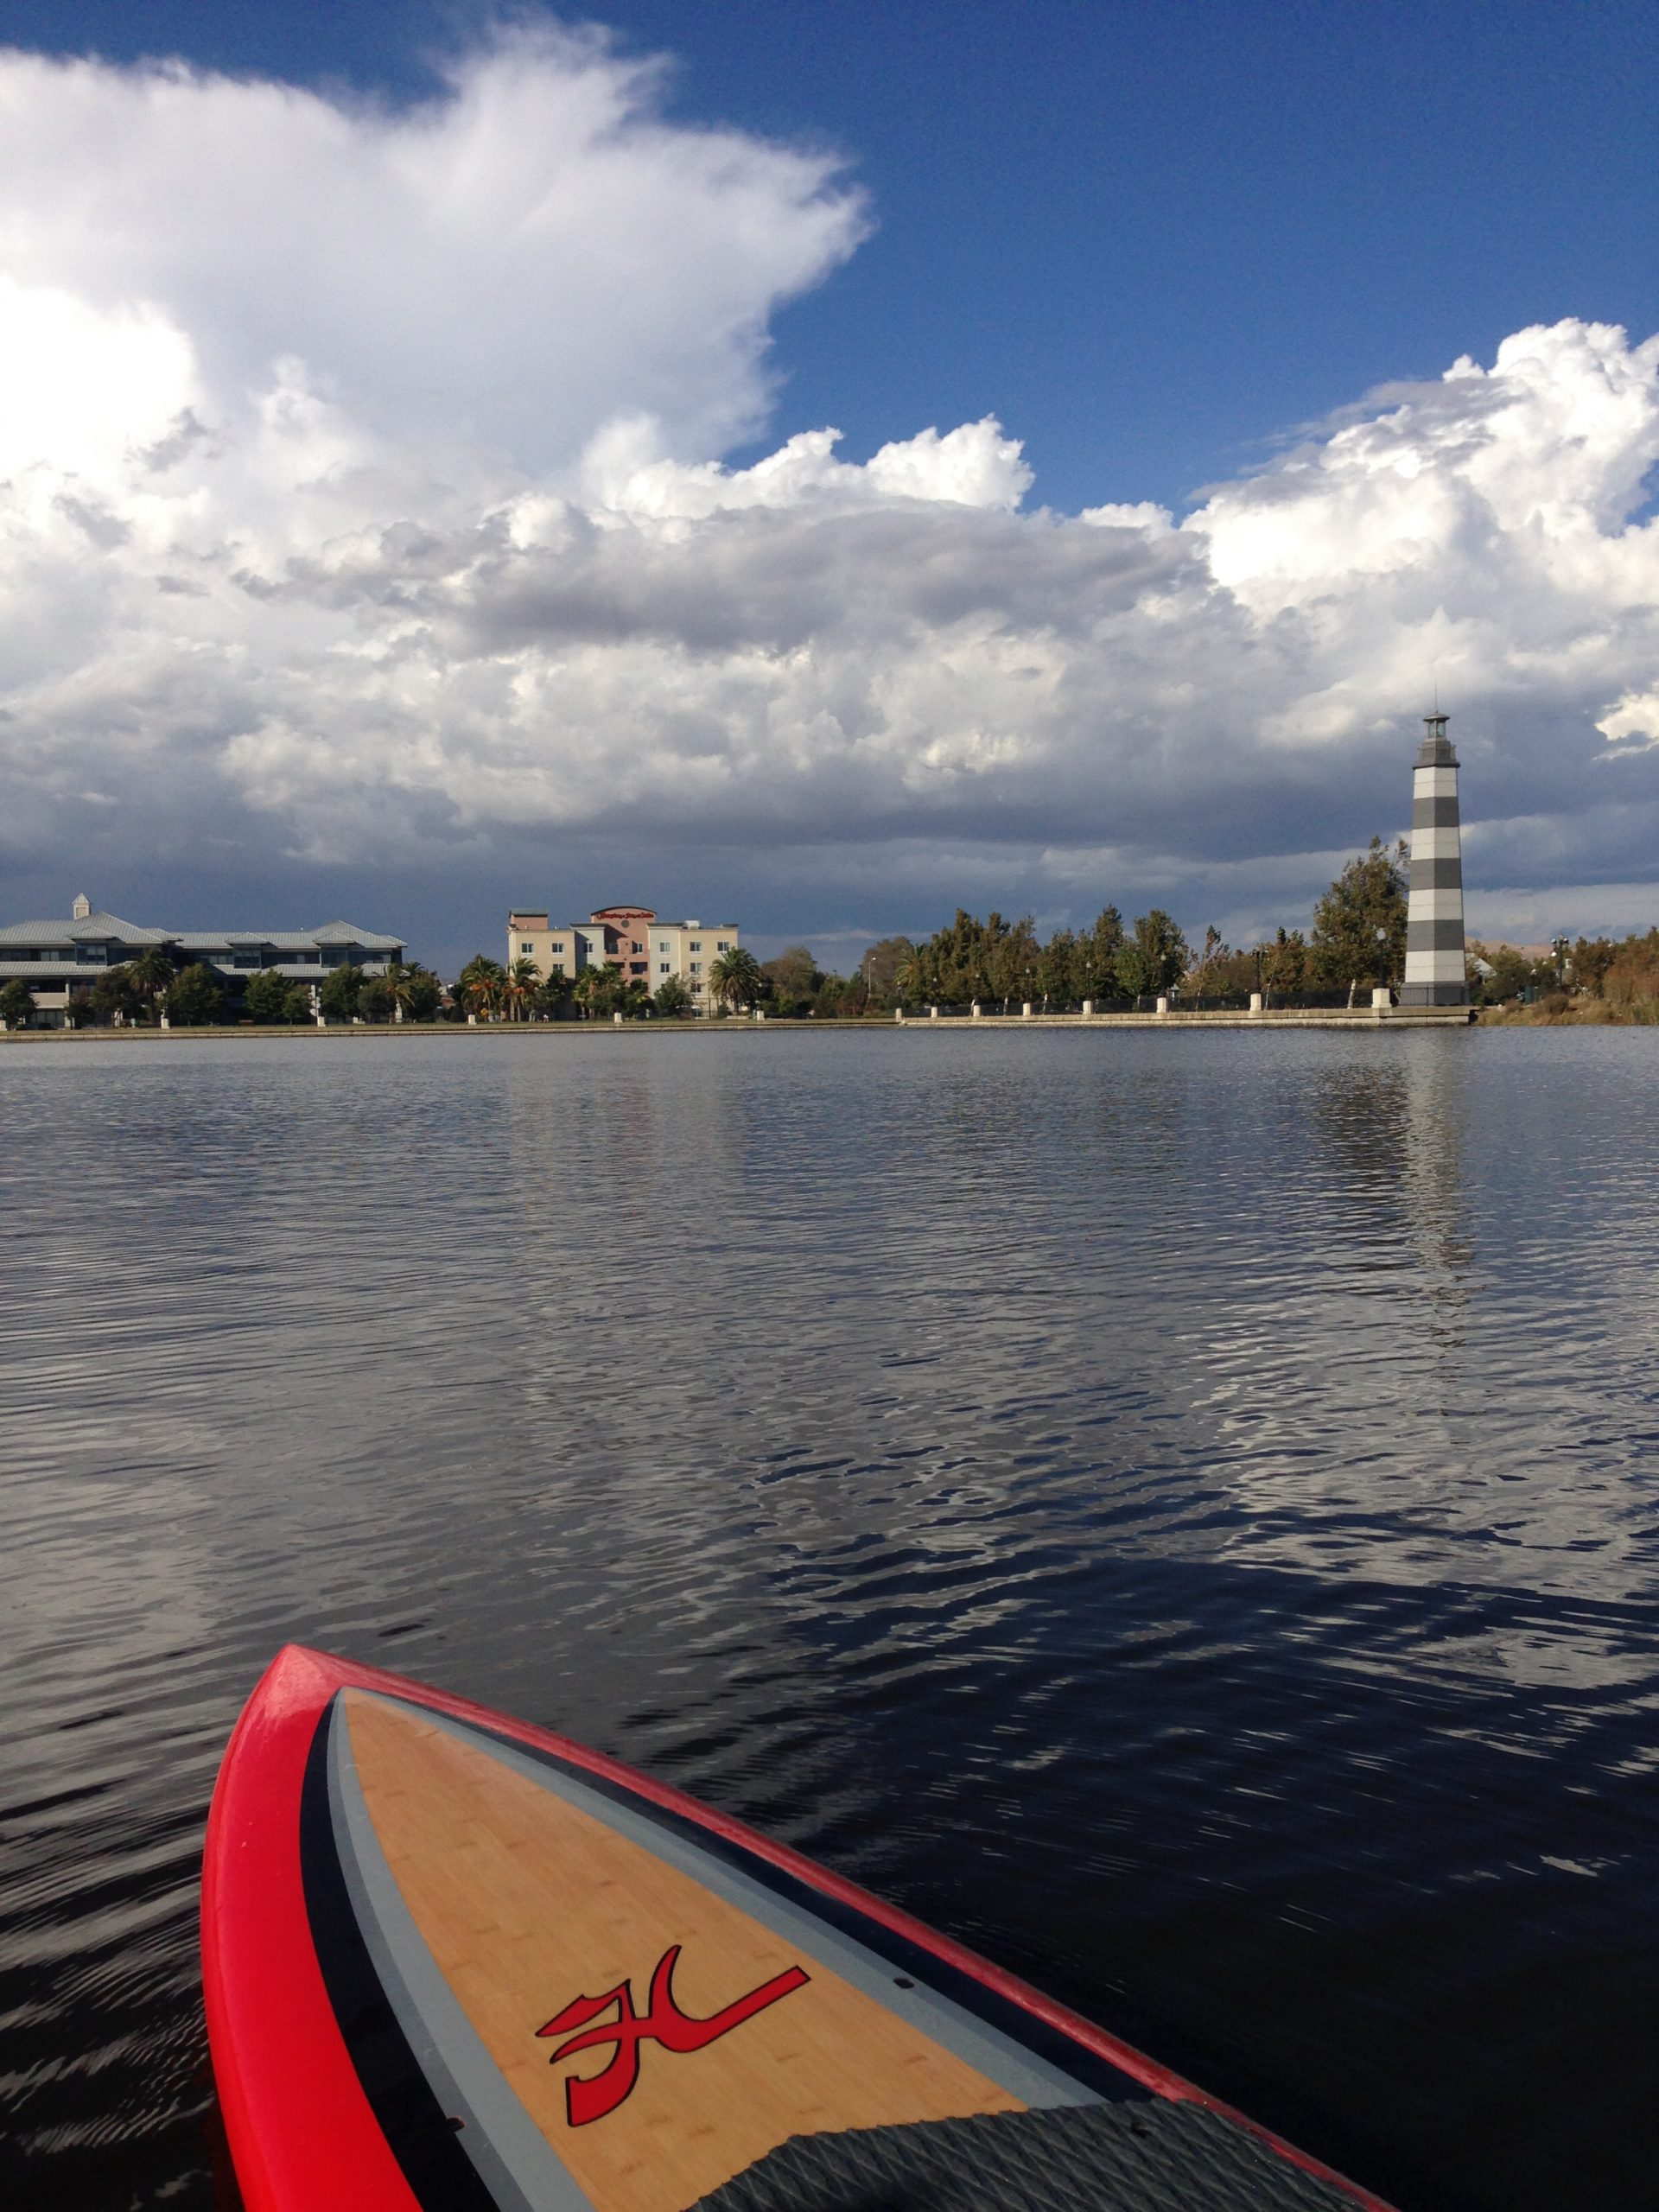 View from paddleboard across water to clouds and sky